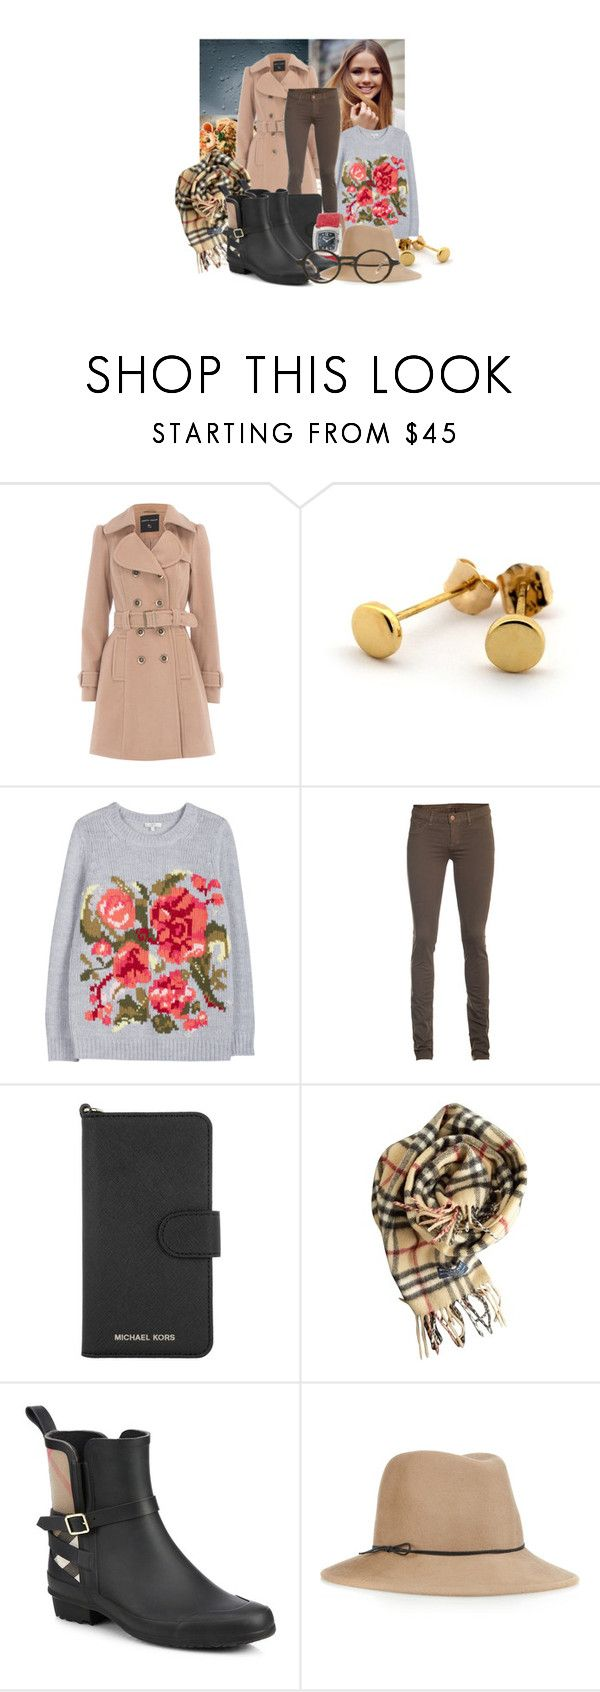 """""""♫ If your lips Feel hungry and tempted Kiss the rain ♫"""" by chiarastella ❤ liked on Polyvore featuring Dorothy Perkins, Joie, J Brand, MICHAEL Michael Kors, Burberry, Salvatore Ferragamo, Steven Alan, Barton Perreira, hat and rainlook"""